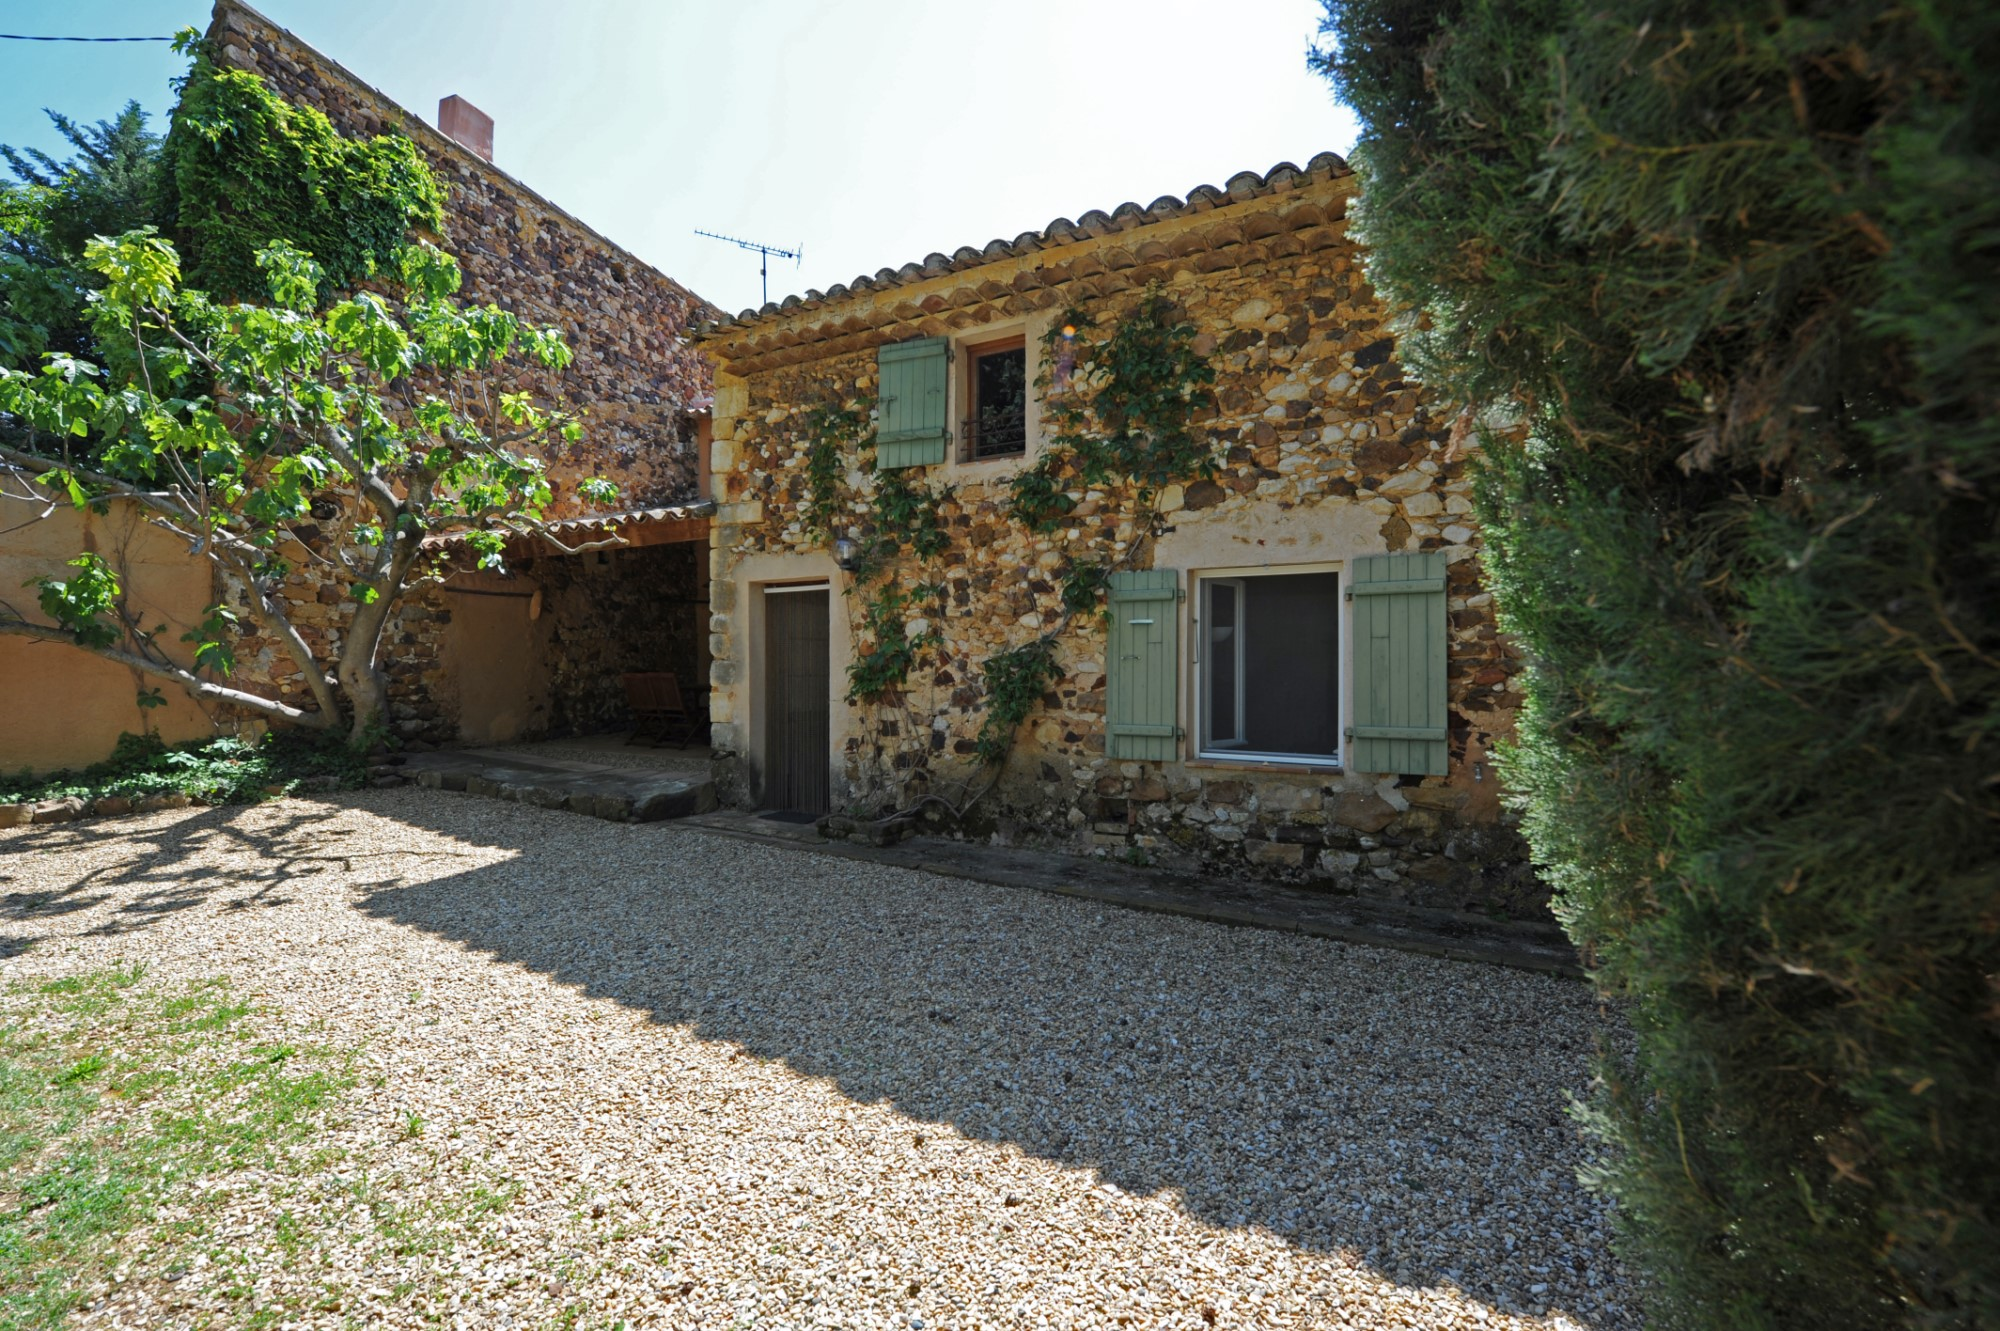 Guest house in Provence